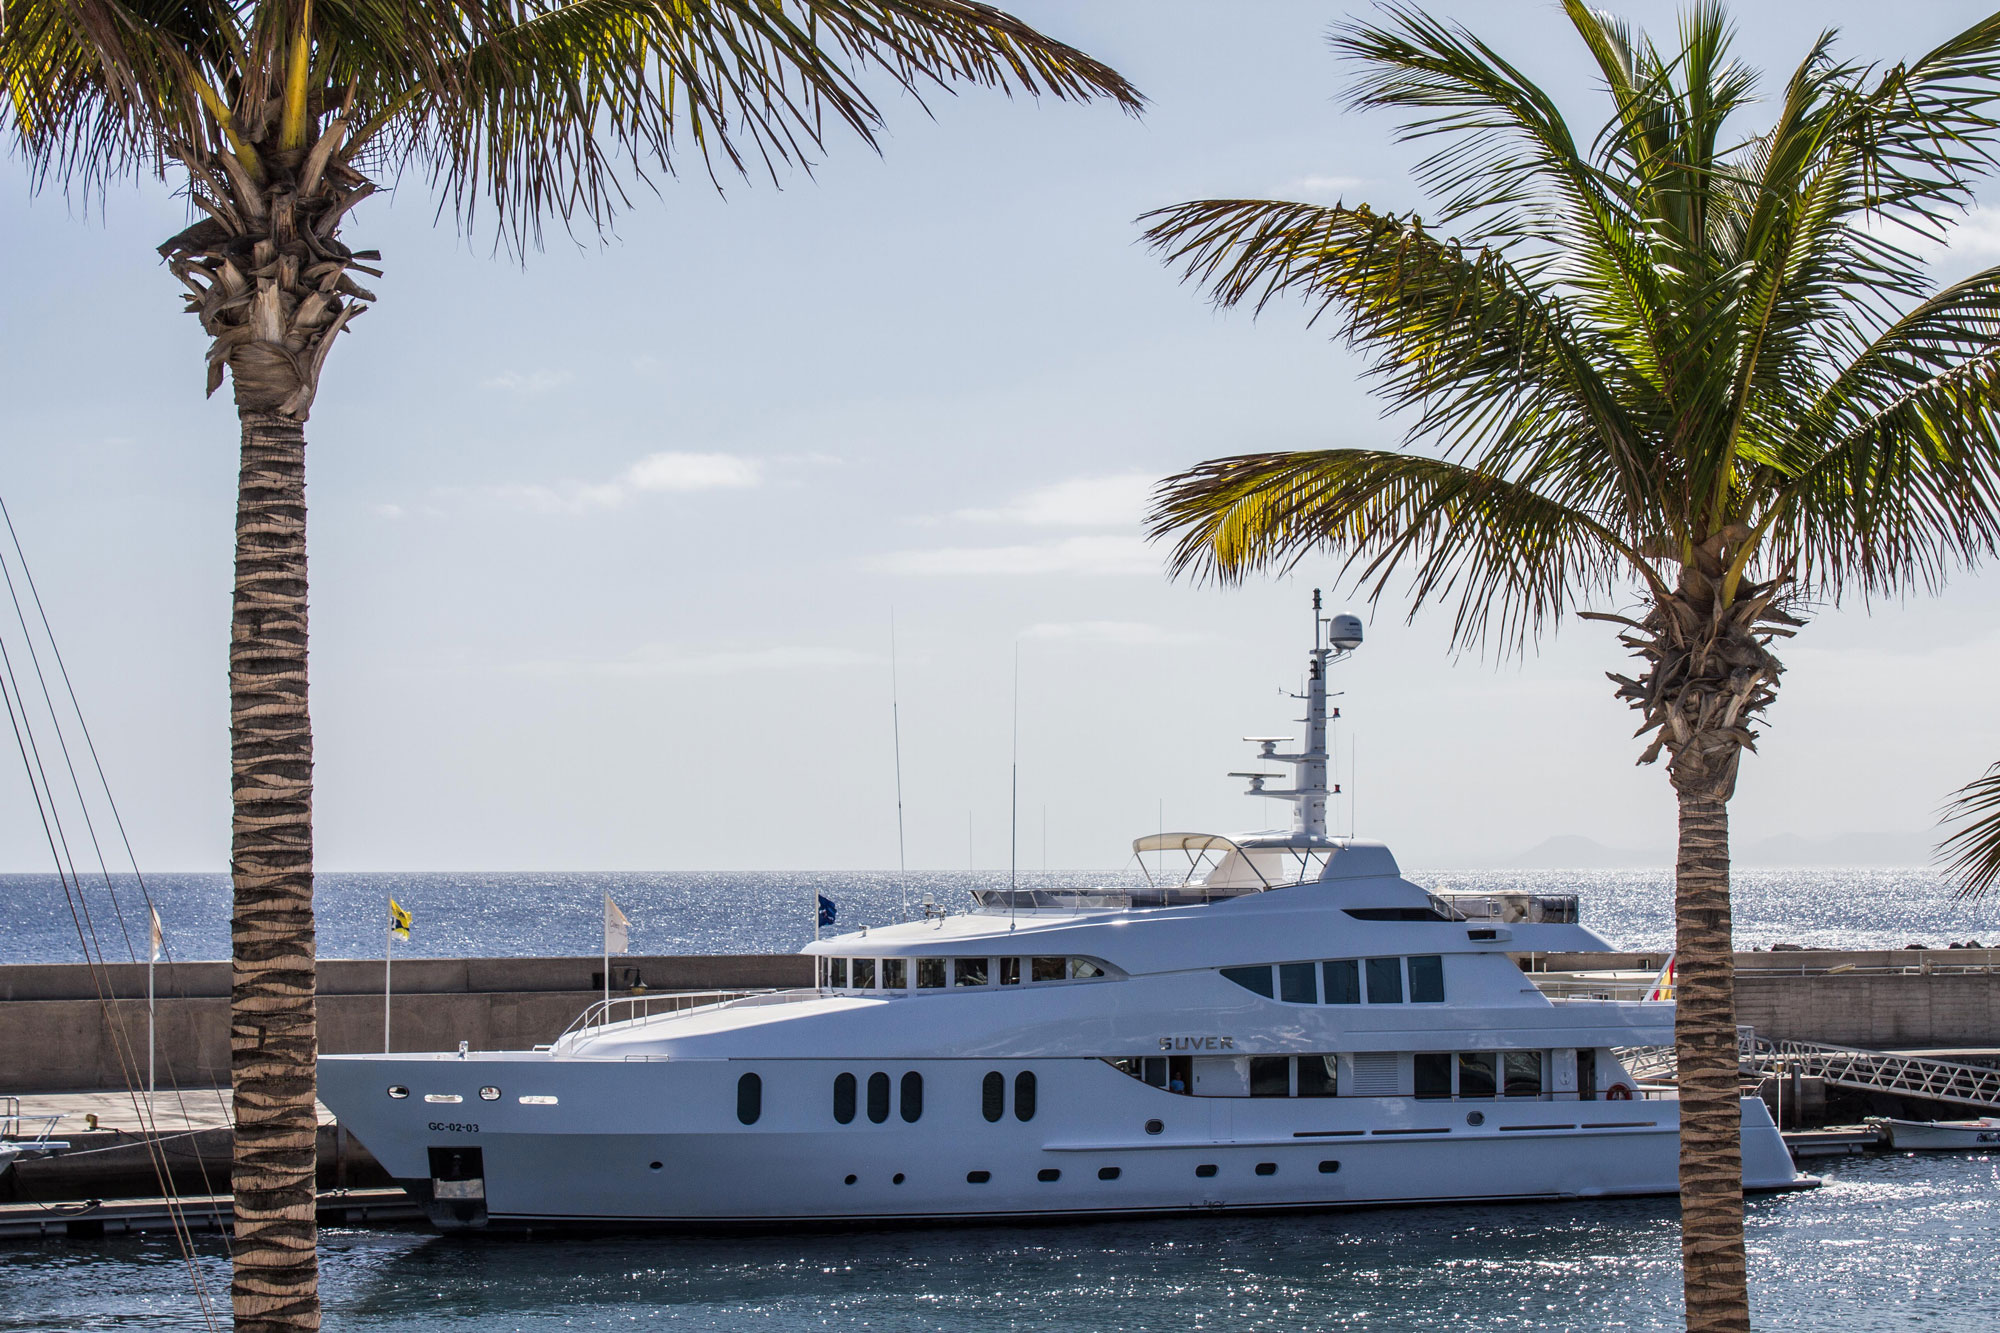 Yacht docked near two palm trees at the Canary Islands.